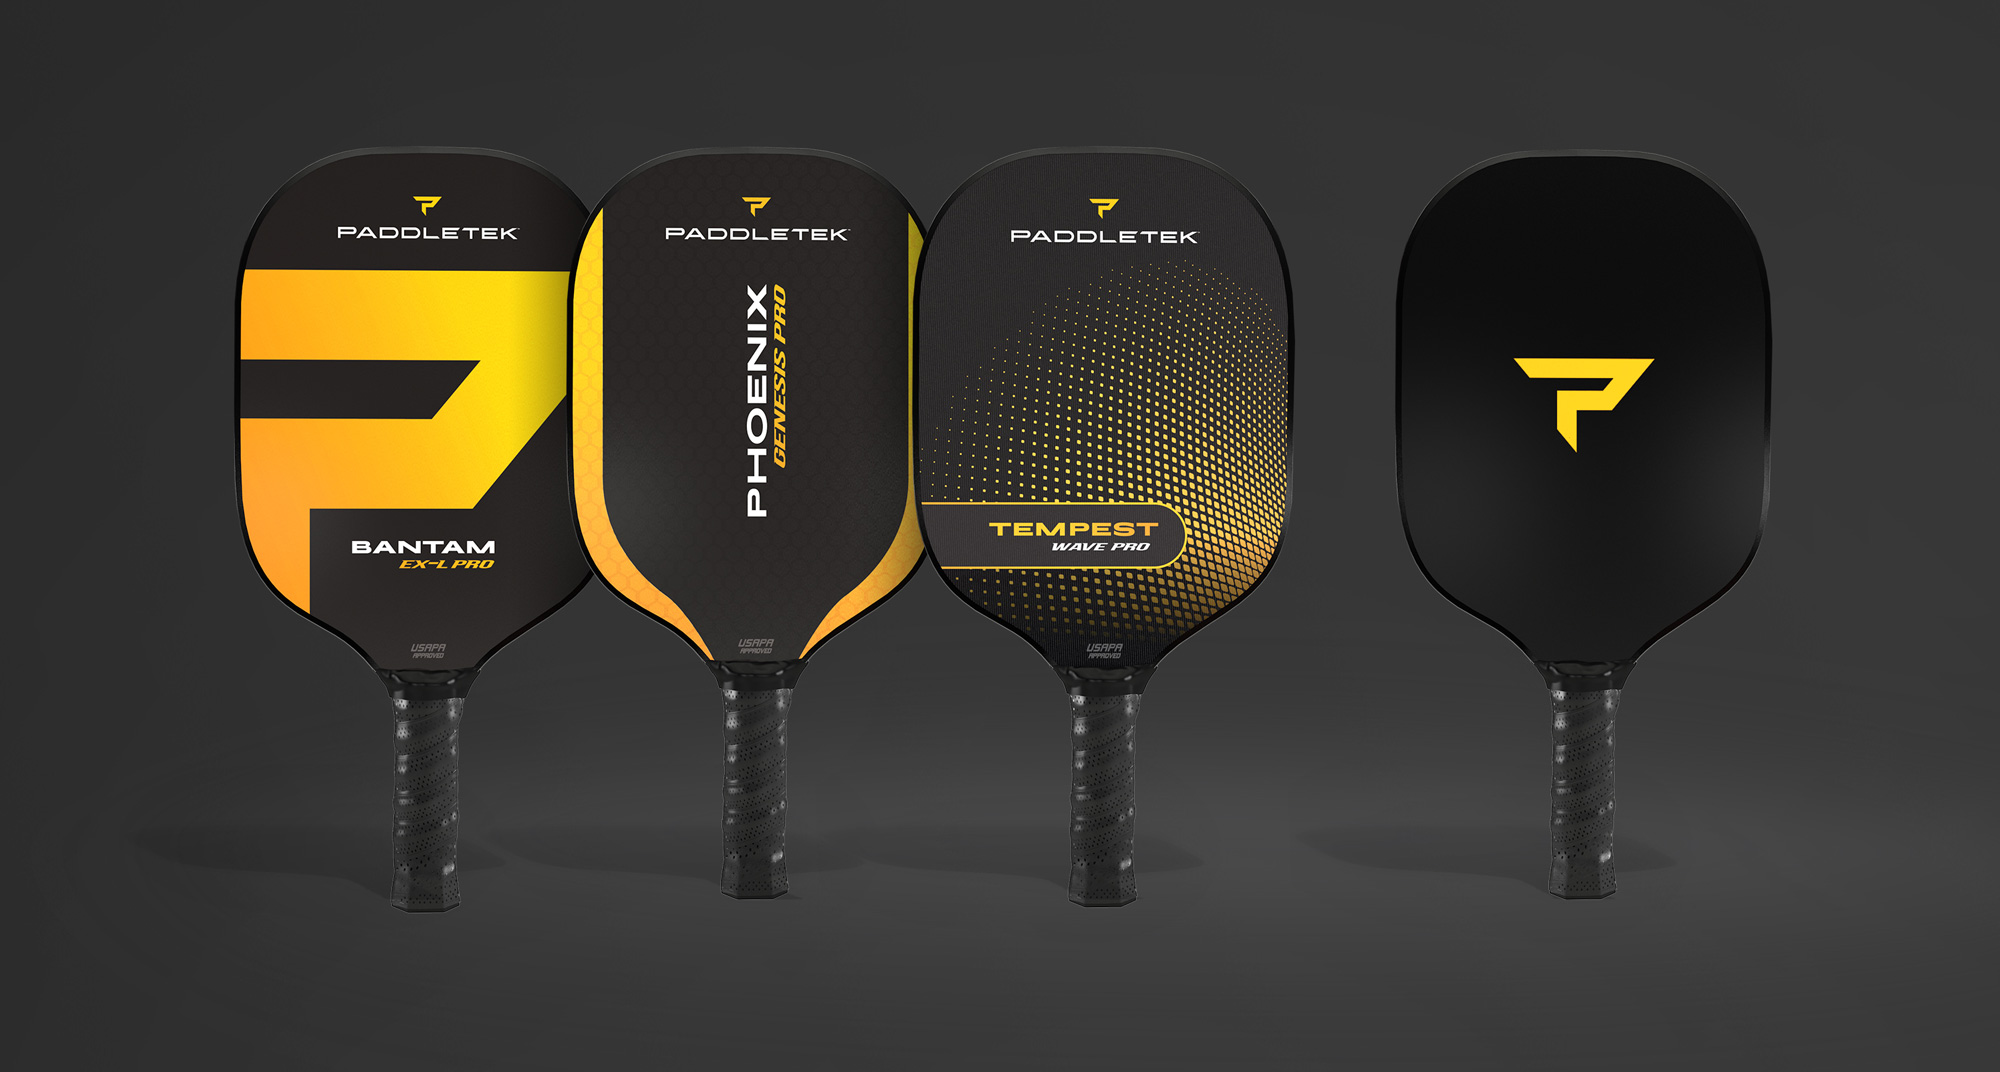 New Logo, Identity, and Packaging for Paddletek by Young & Laramore